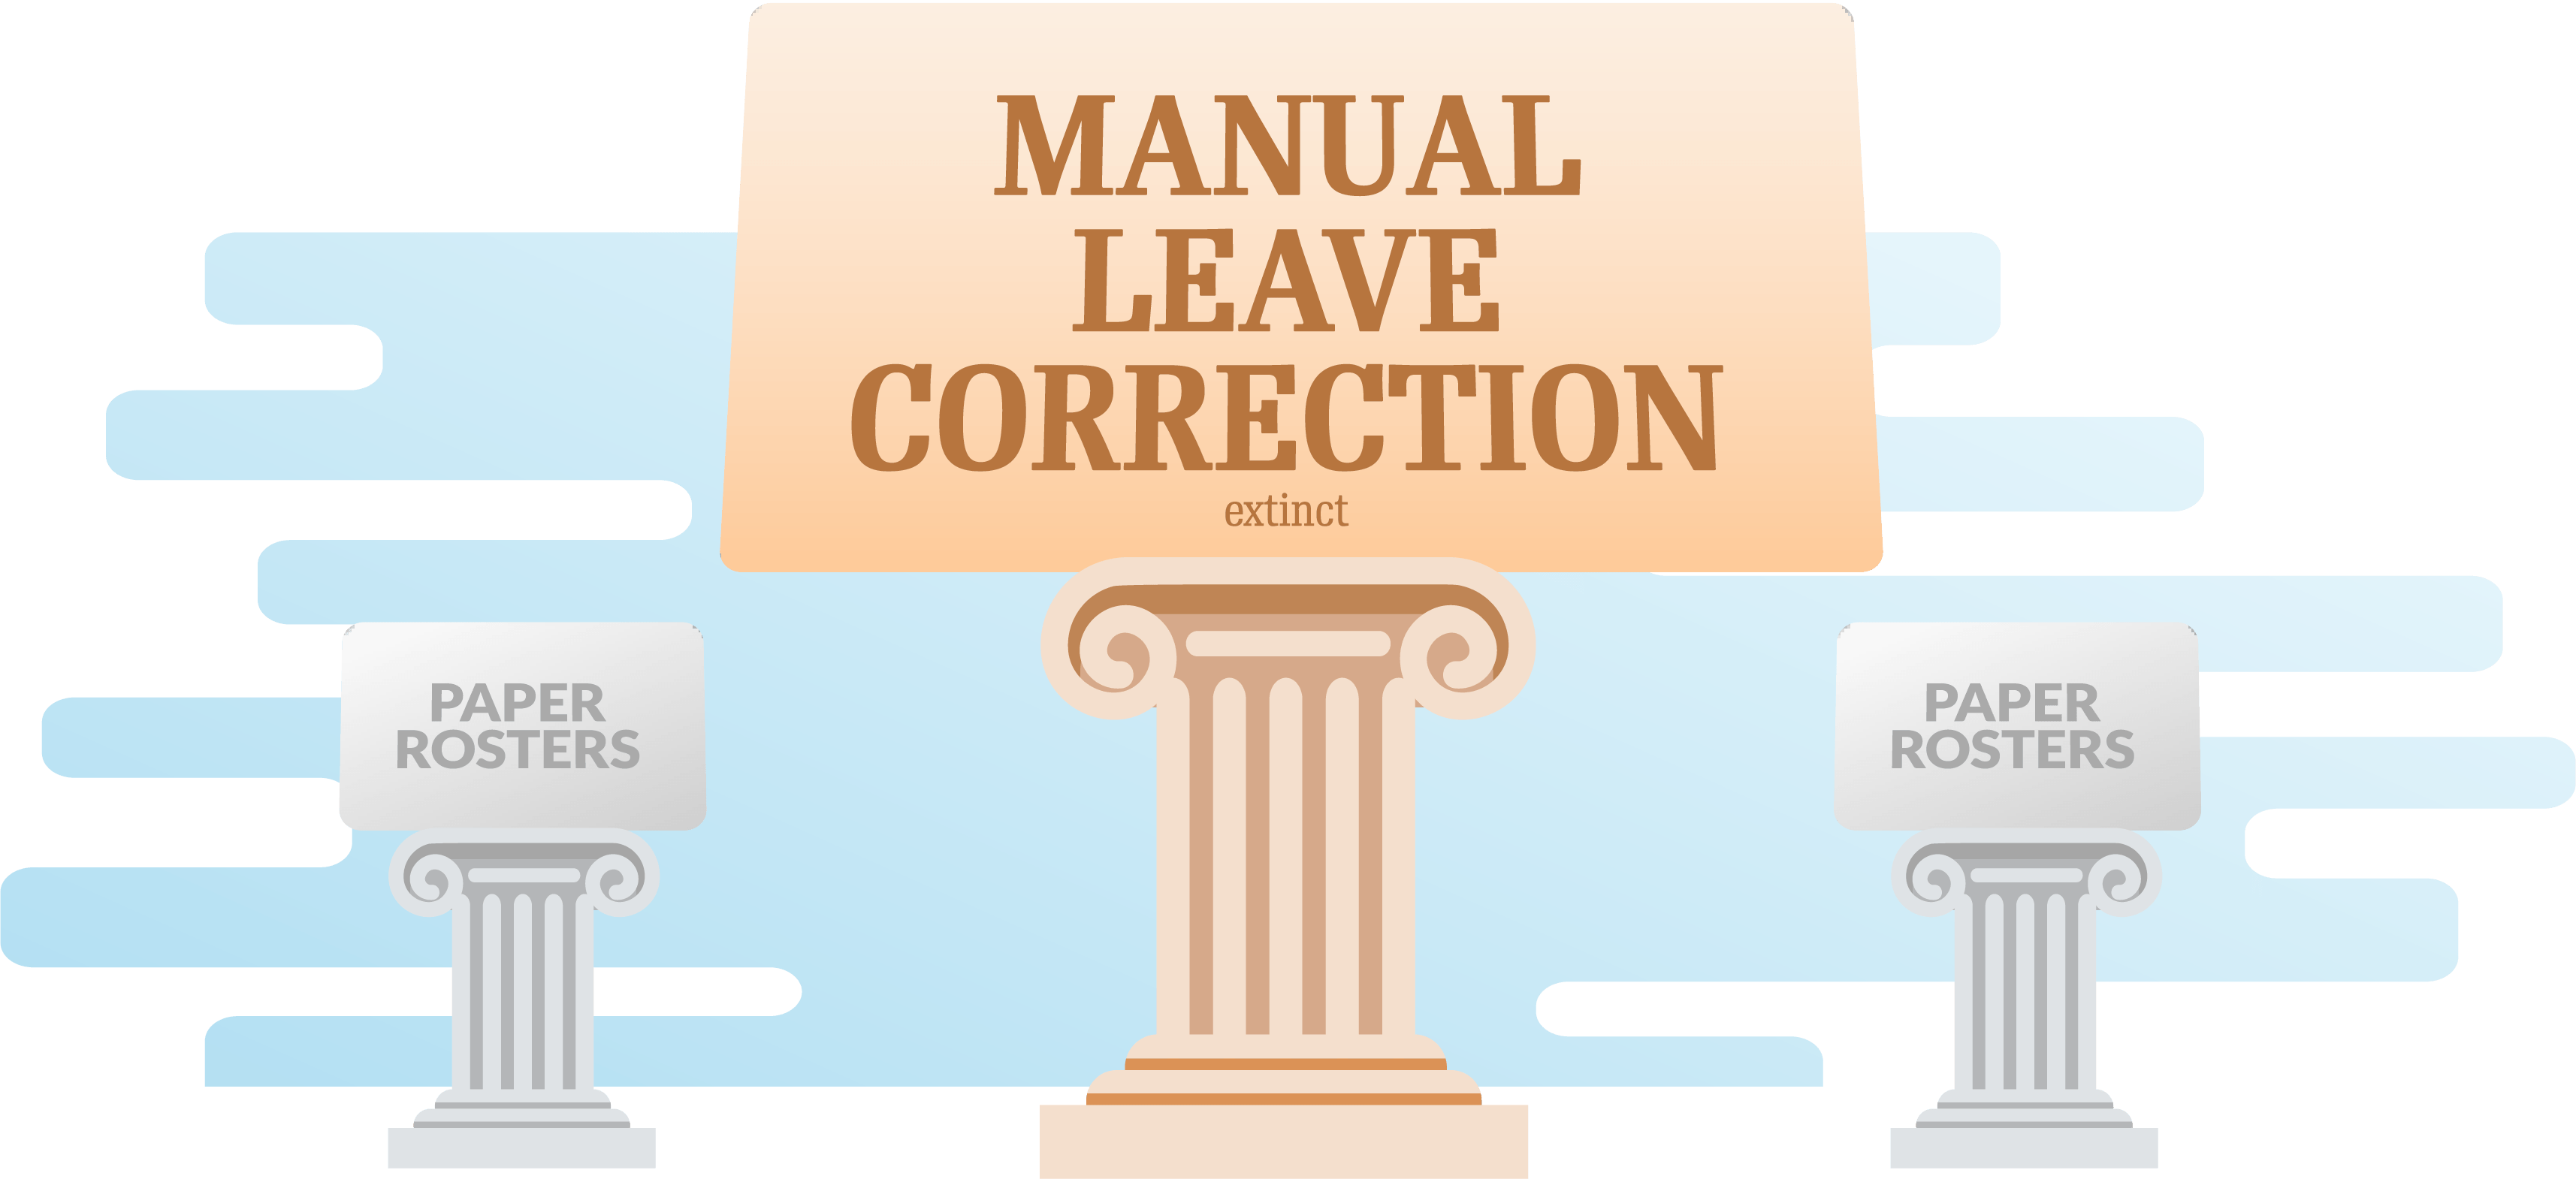 Manual leave corrections will become extinct.